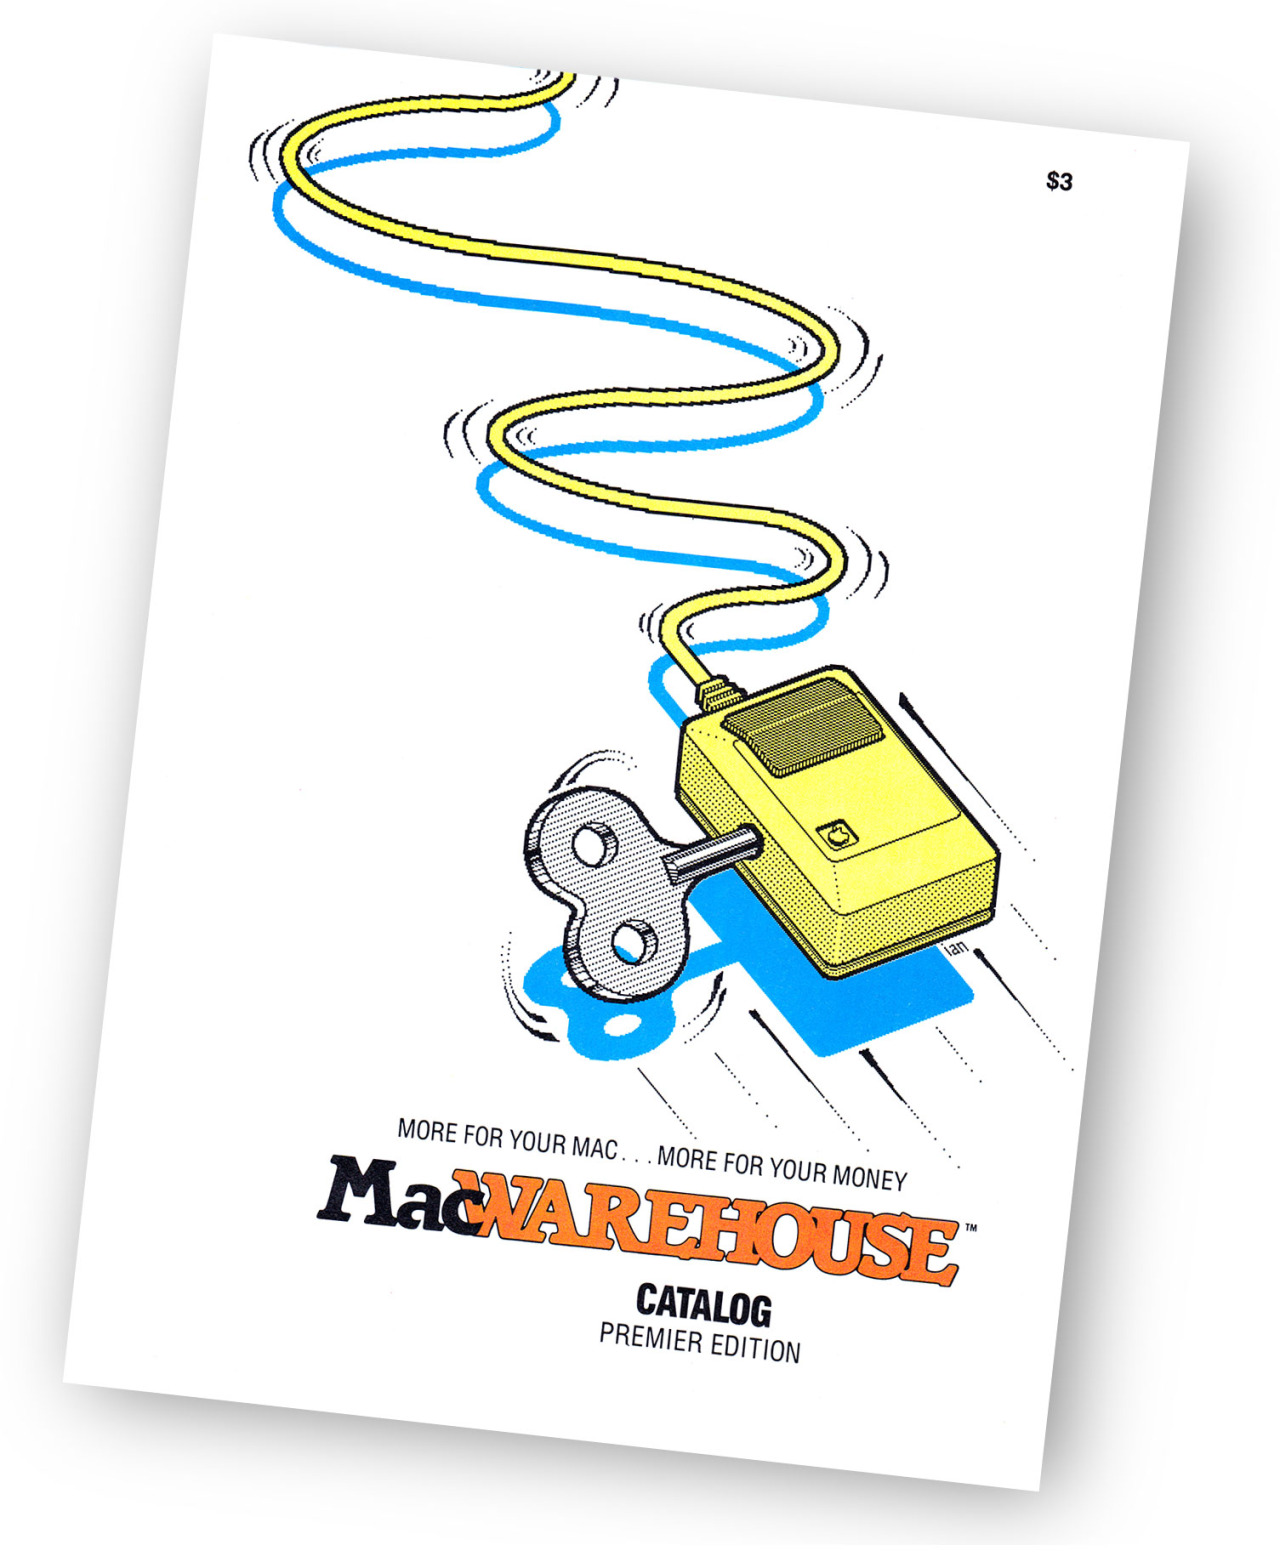 Macwarehouse Catalog Cover